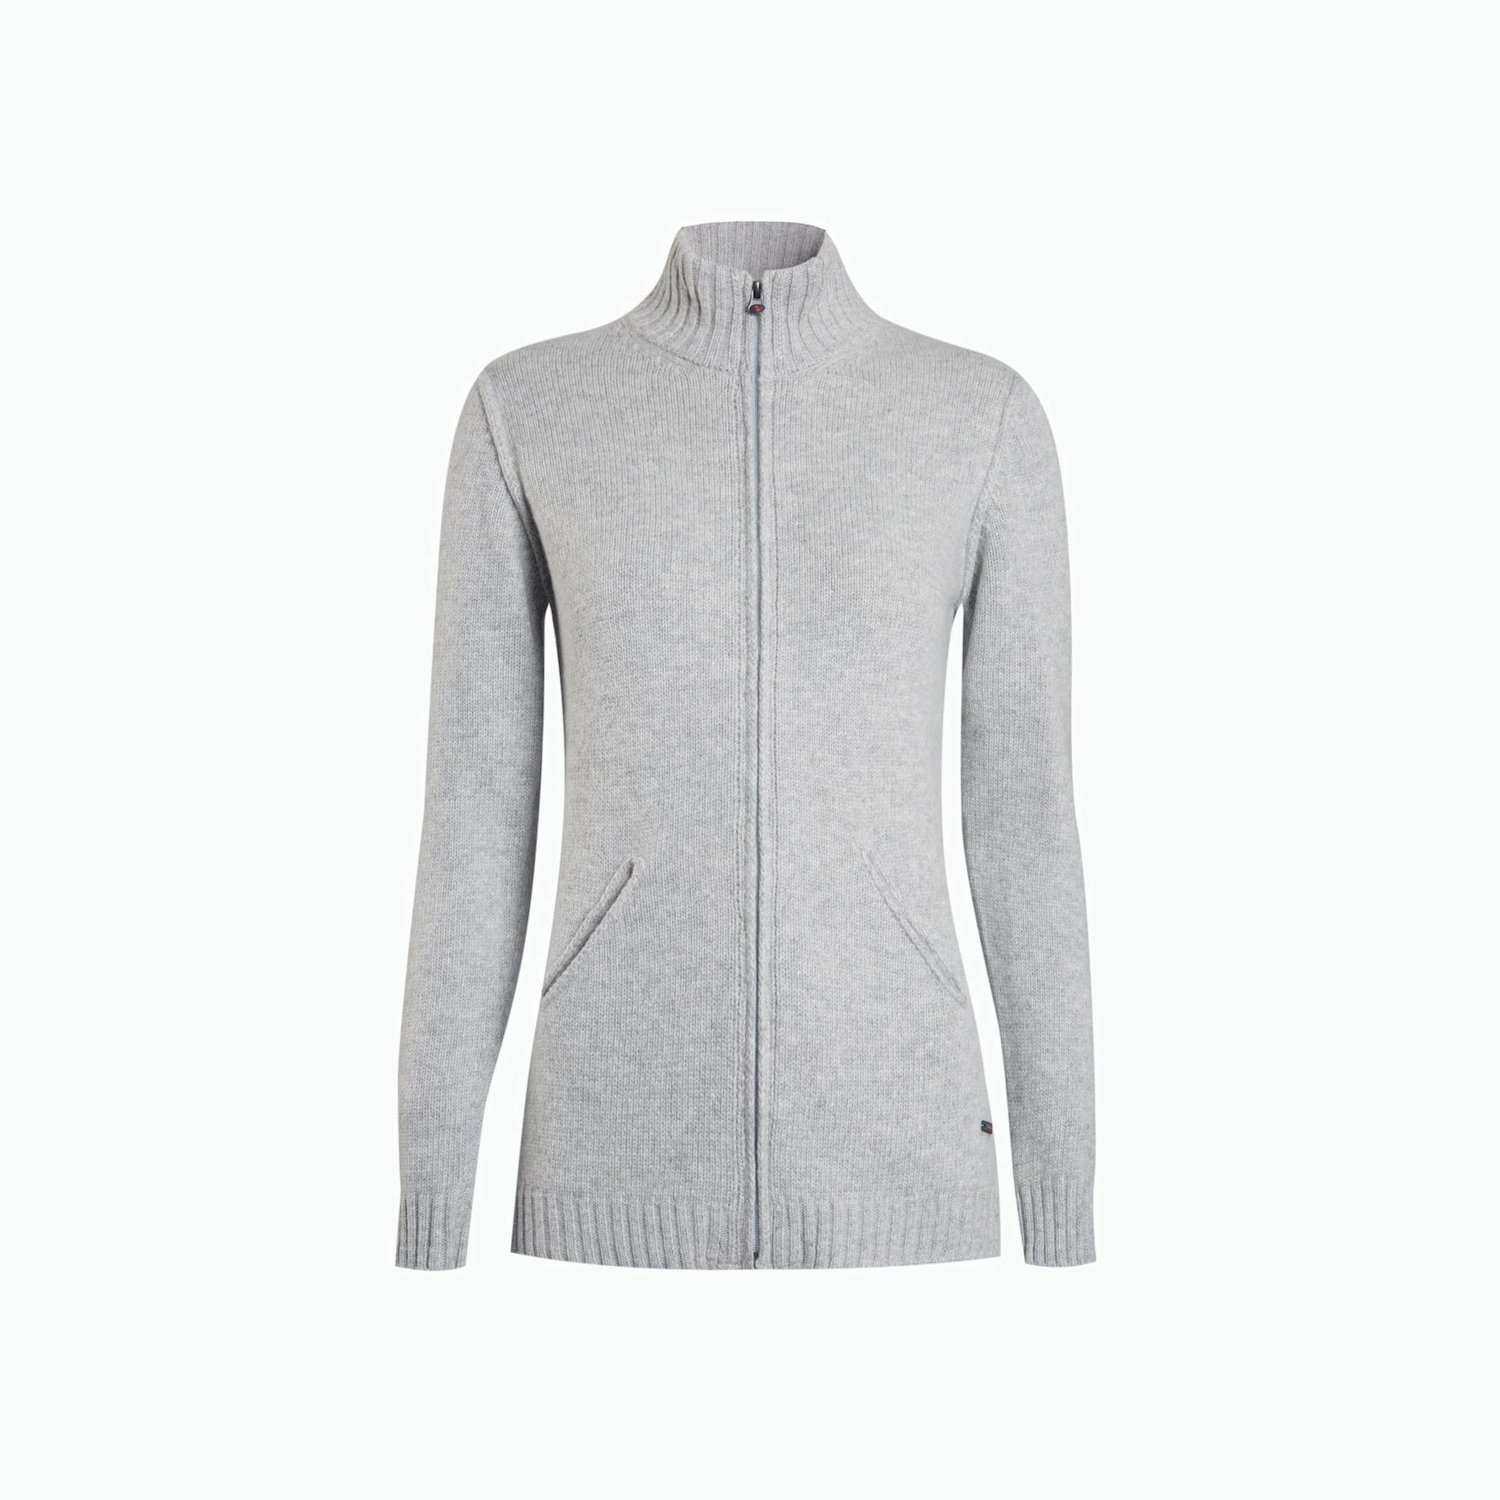 B149 Cardigan - Light Grey Melange